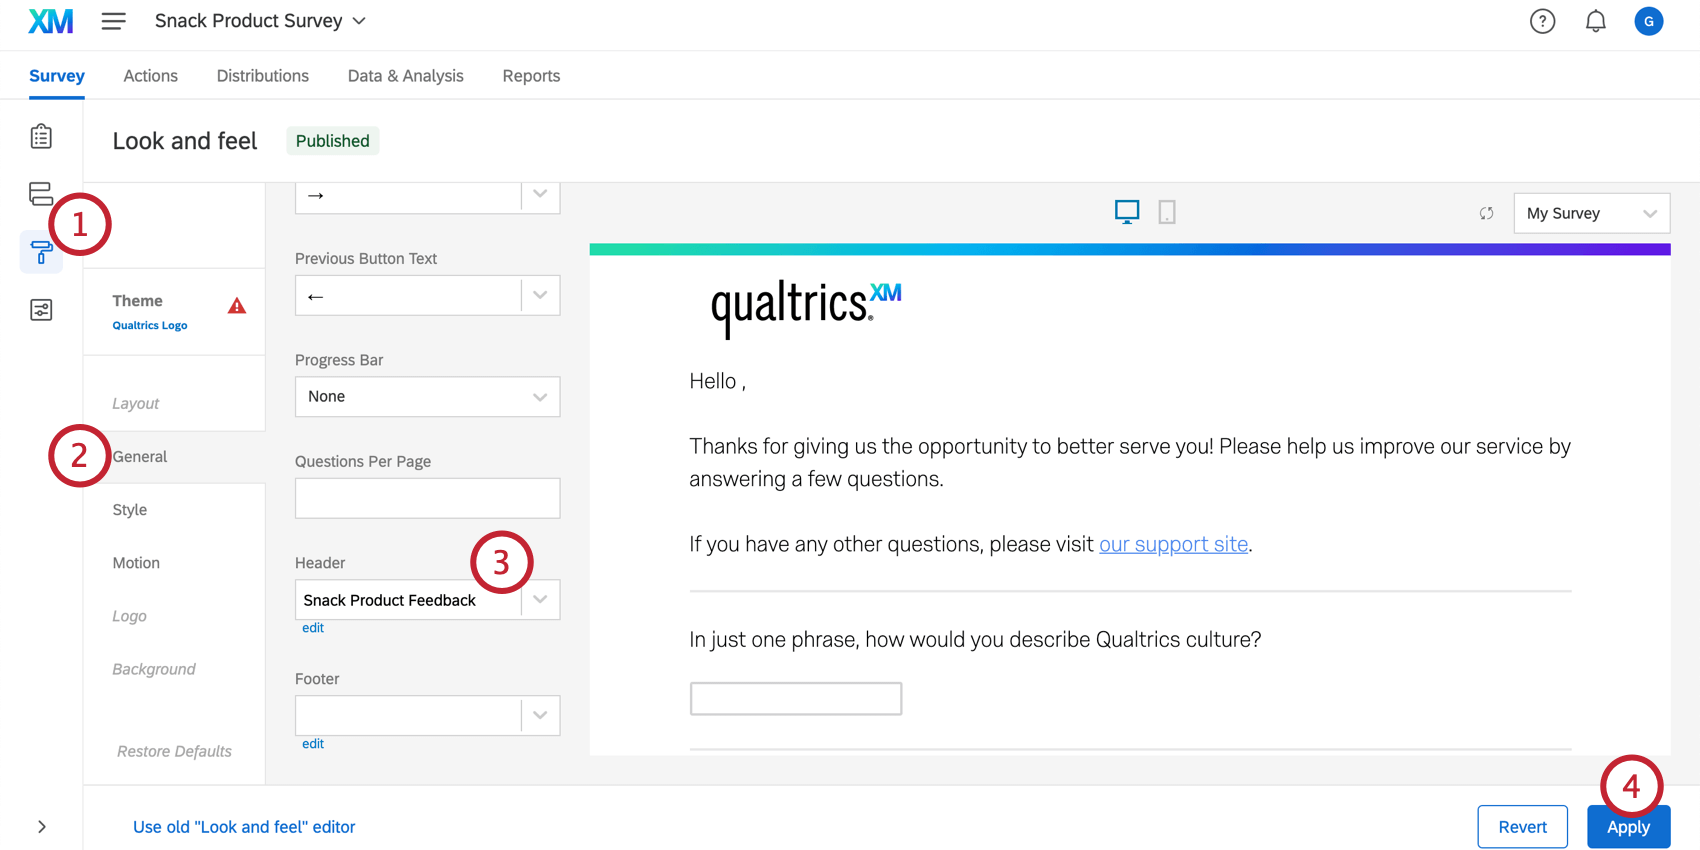 In the Look and feel menu, adding a header to the survey